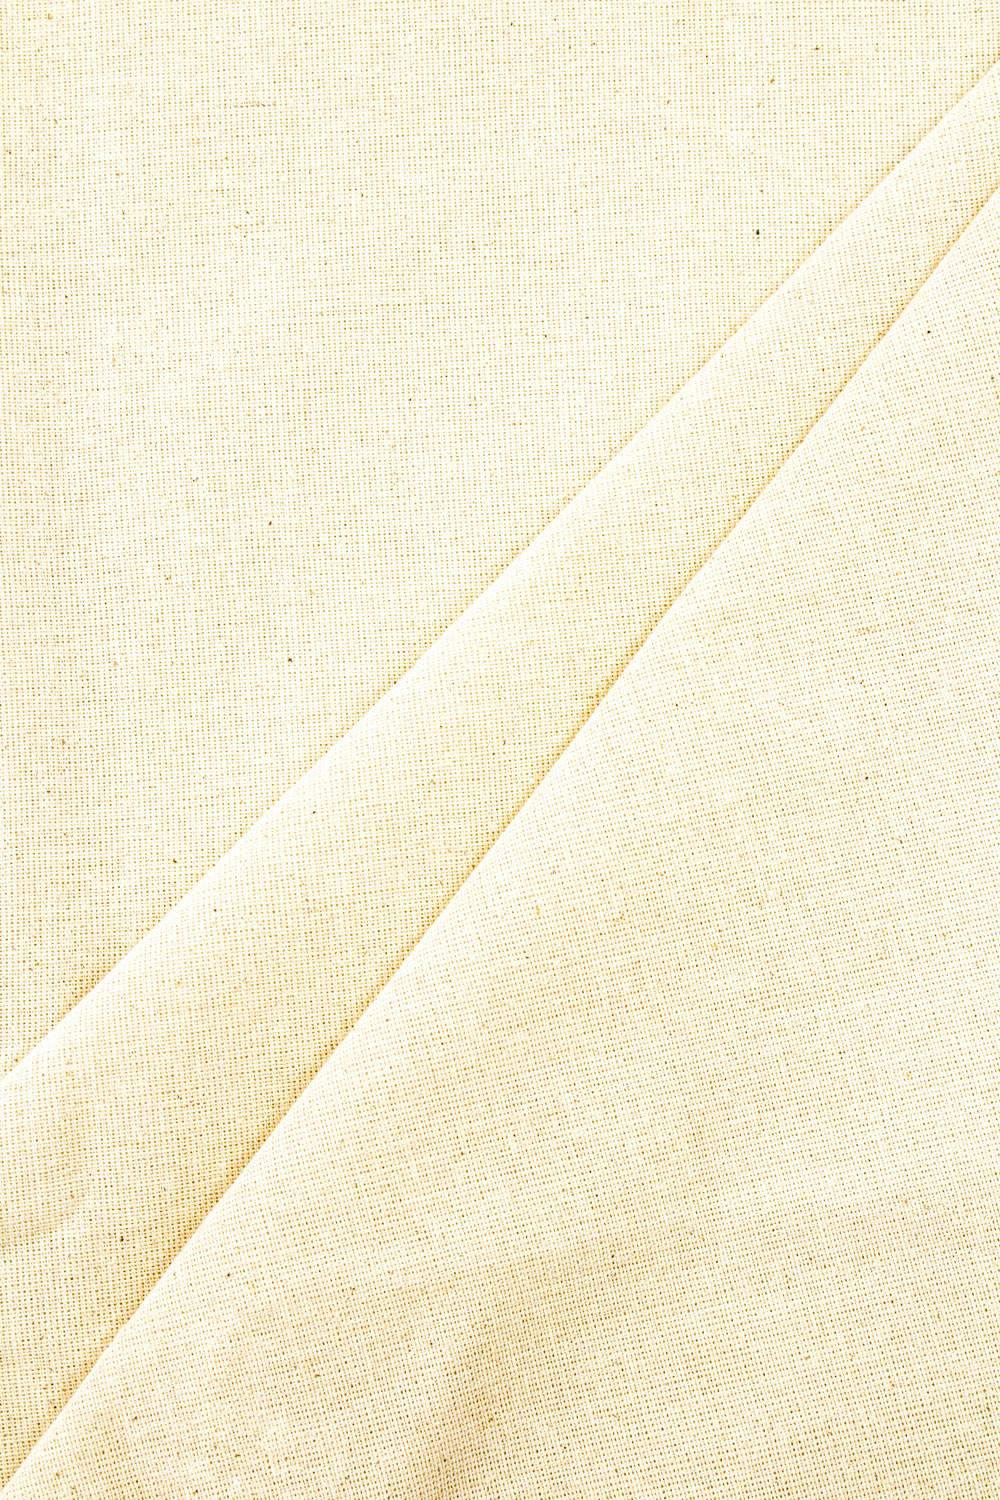 Fabric - Raw Cotton - Straw - 165 cm - 180 g/m2